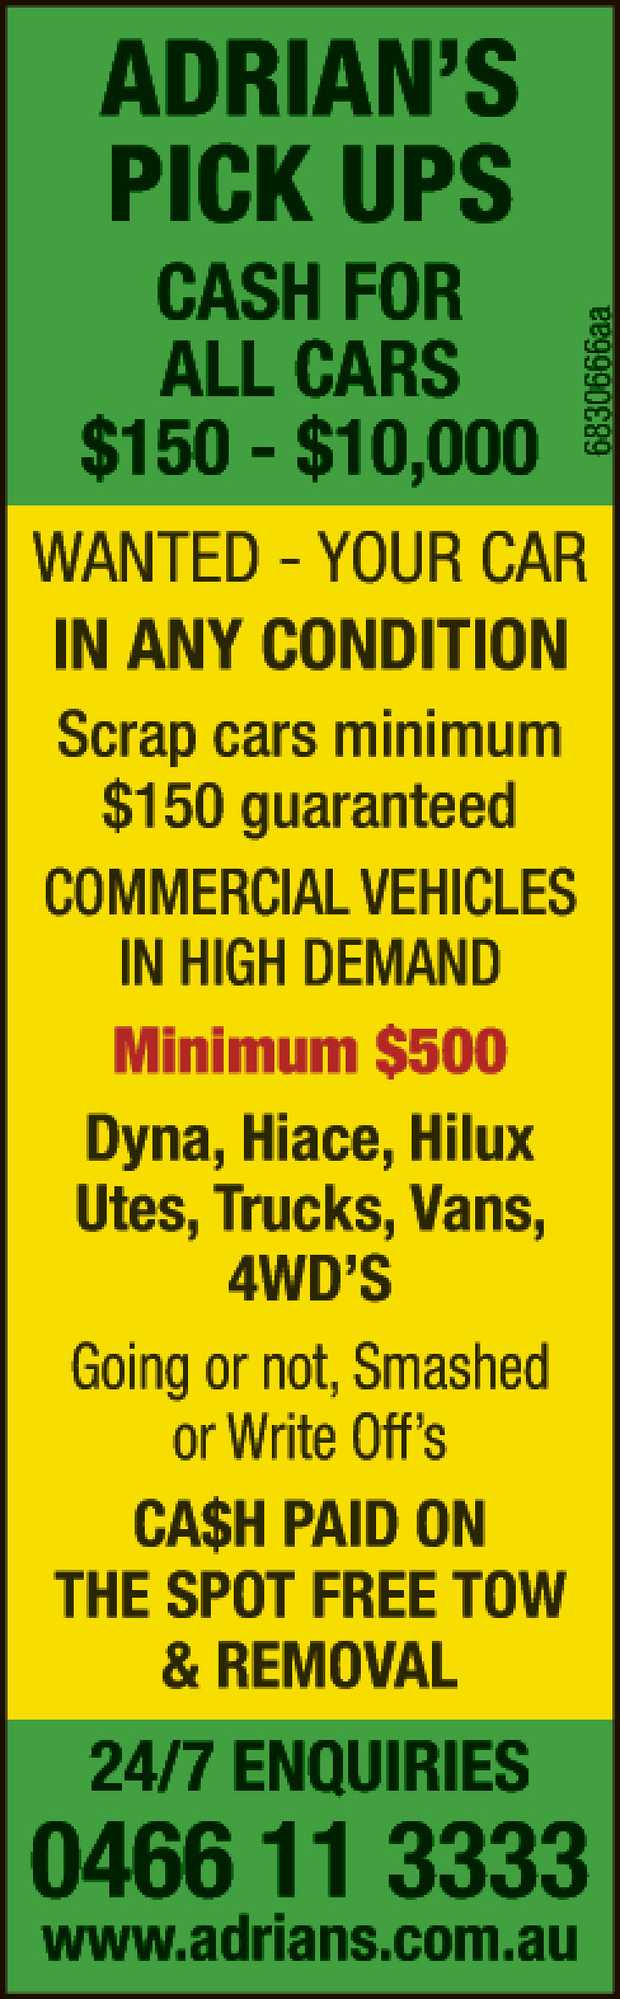 ADRIAN'S PICK UPS CASH FOR ALL CARS $150 - $10,000 WANTED - YOUR CAR IN ANY CONDITION ...